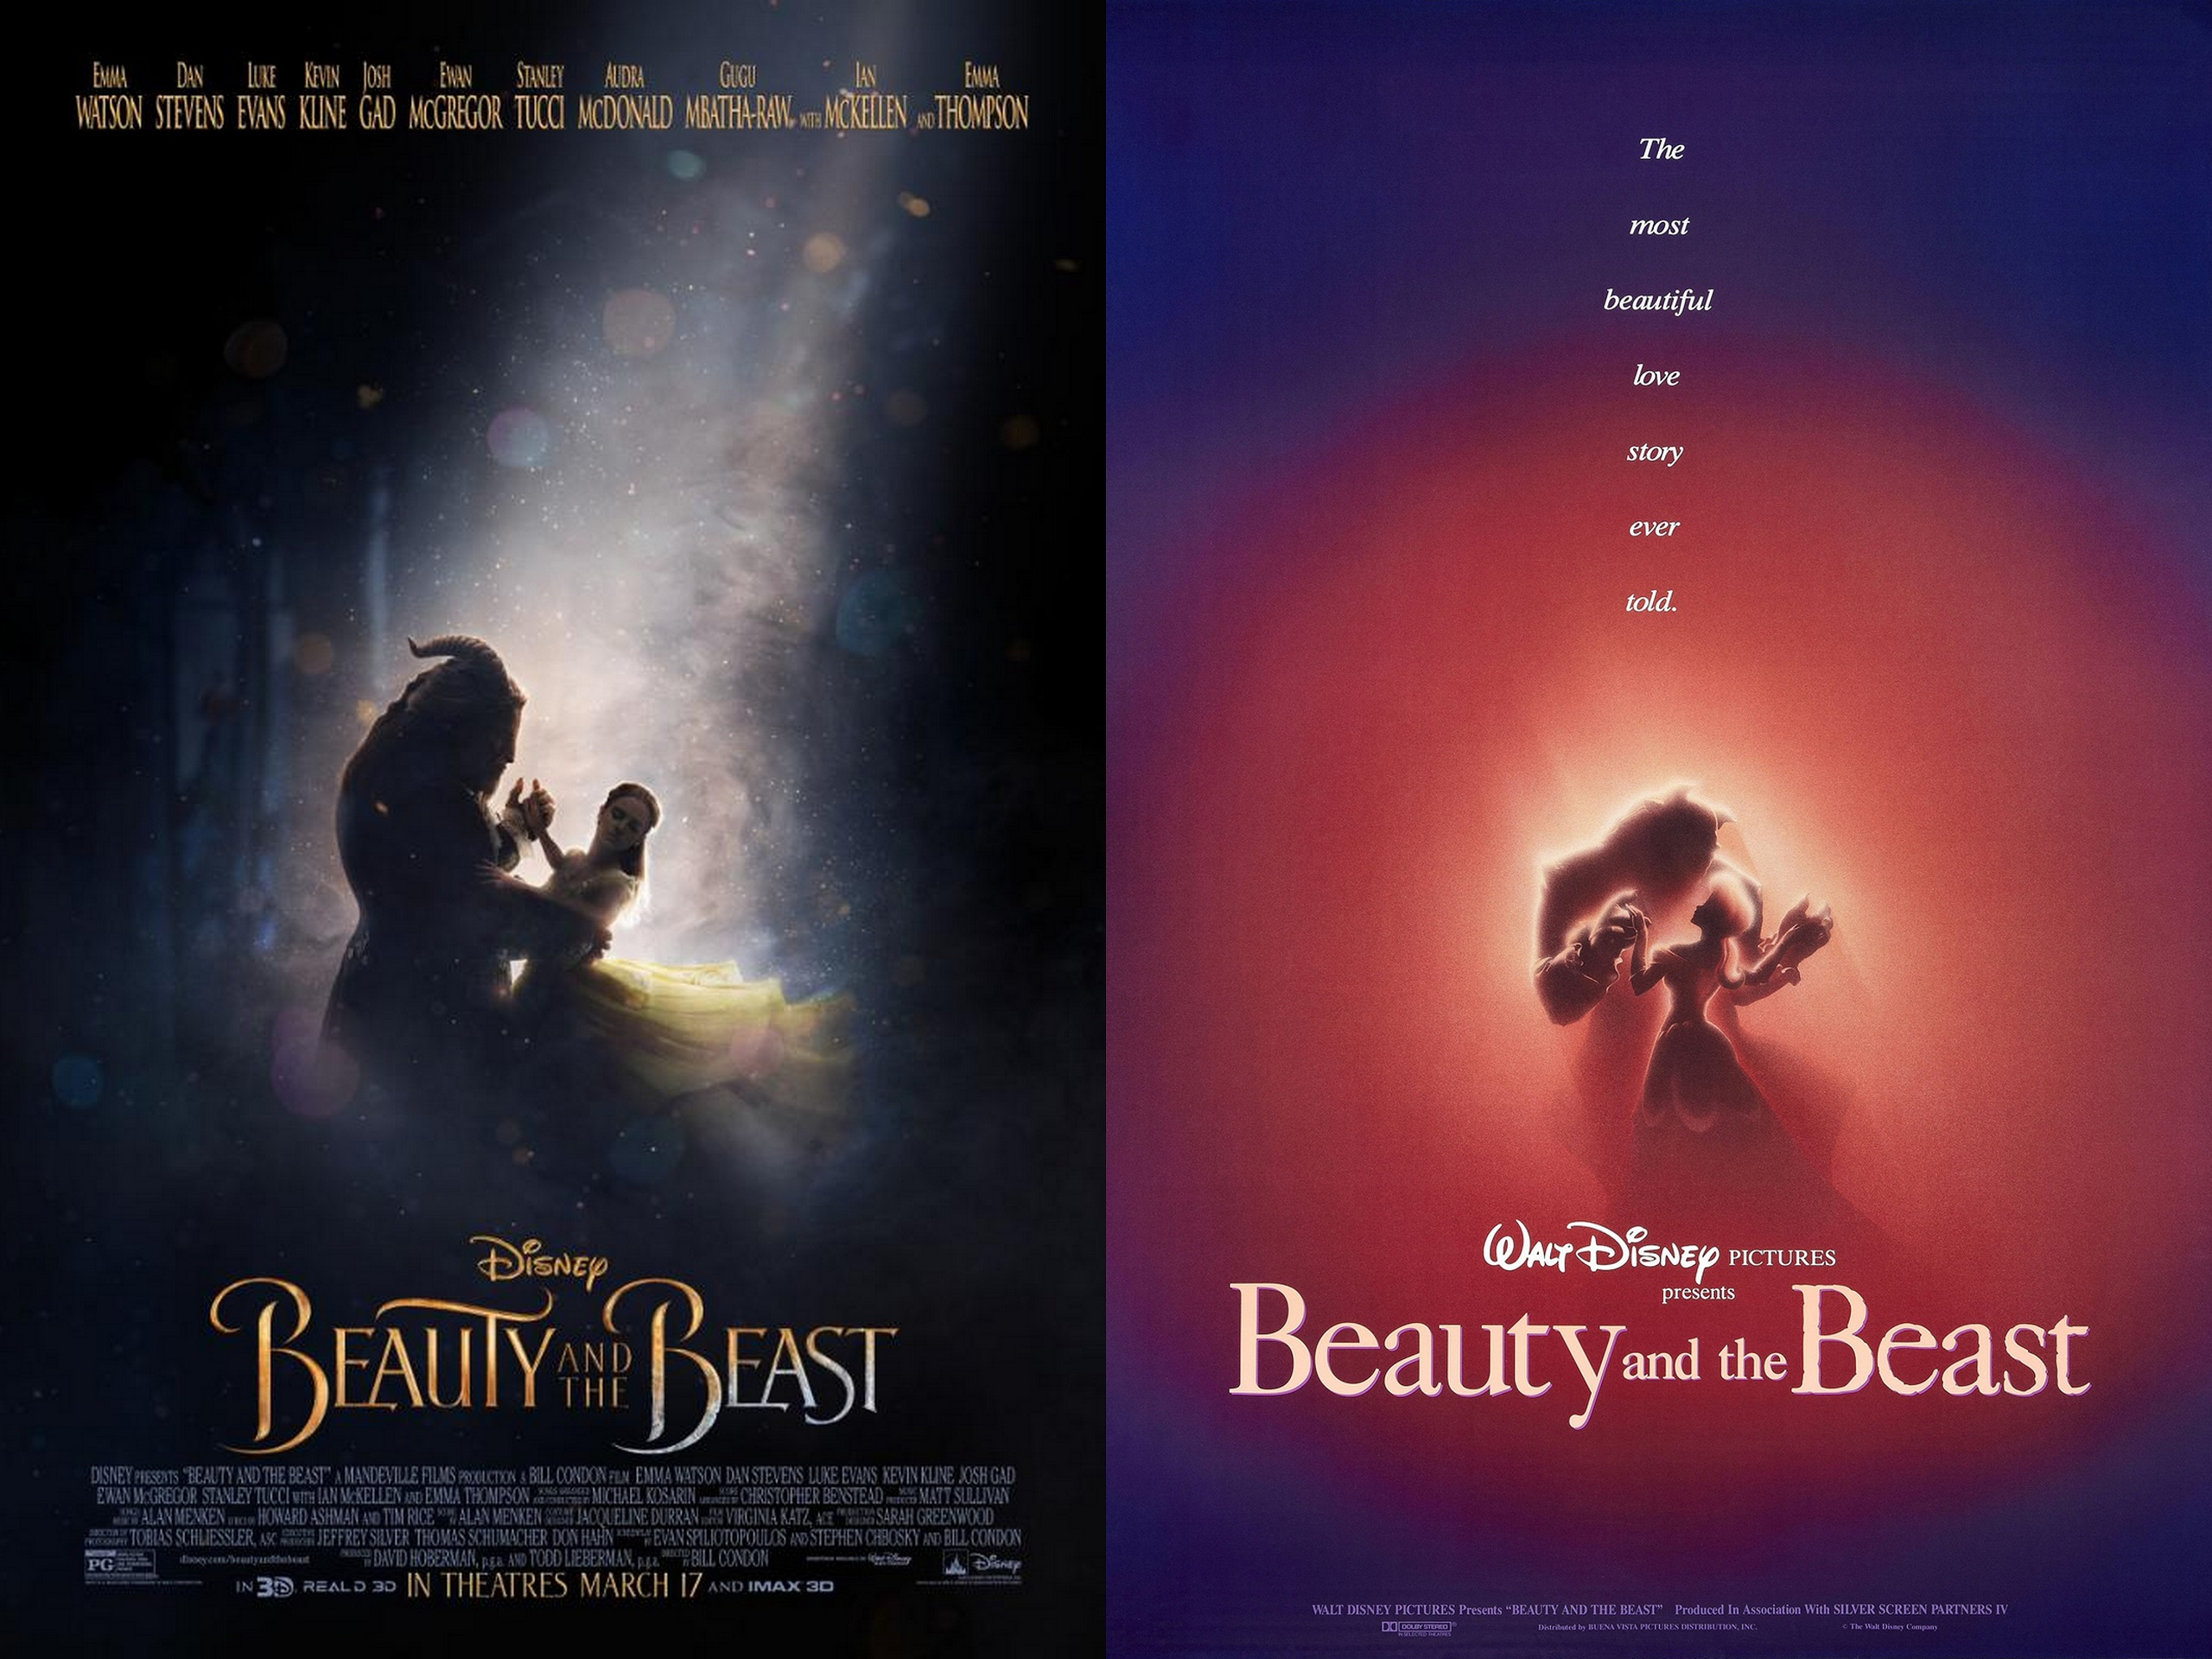 beauty-and-the-beast-posters